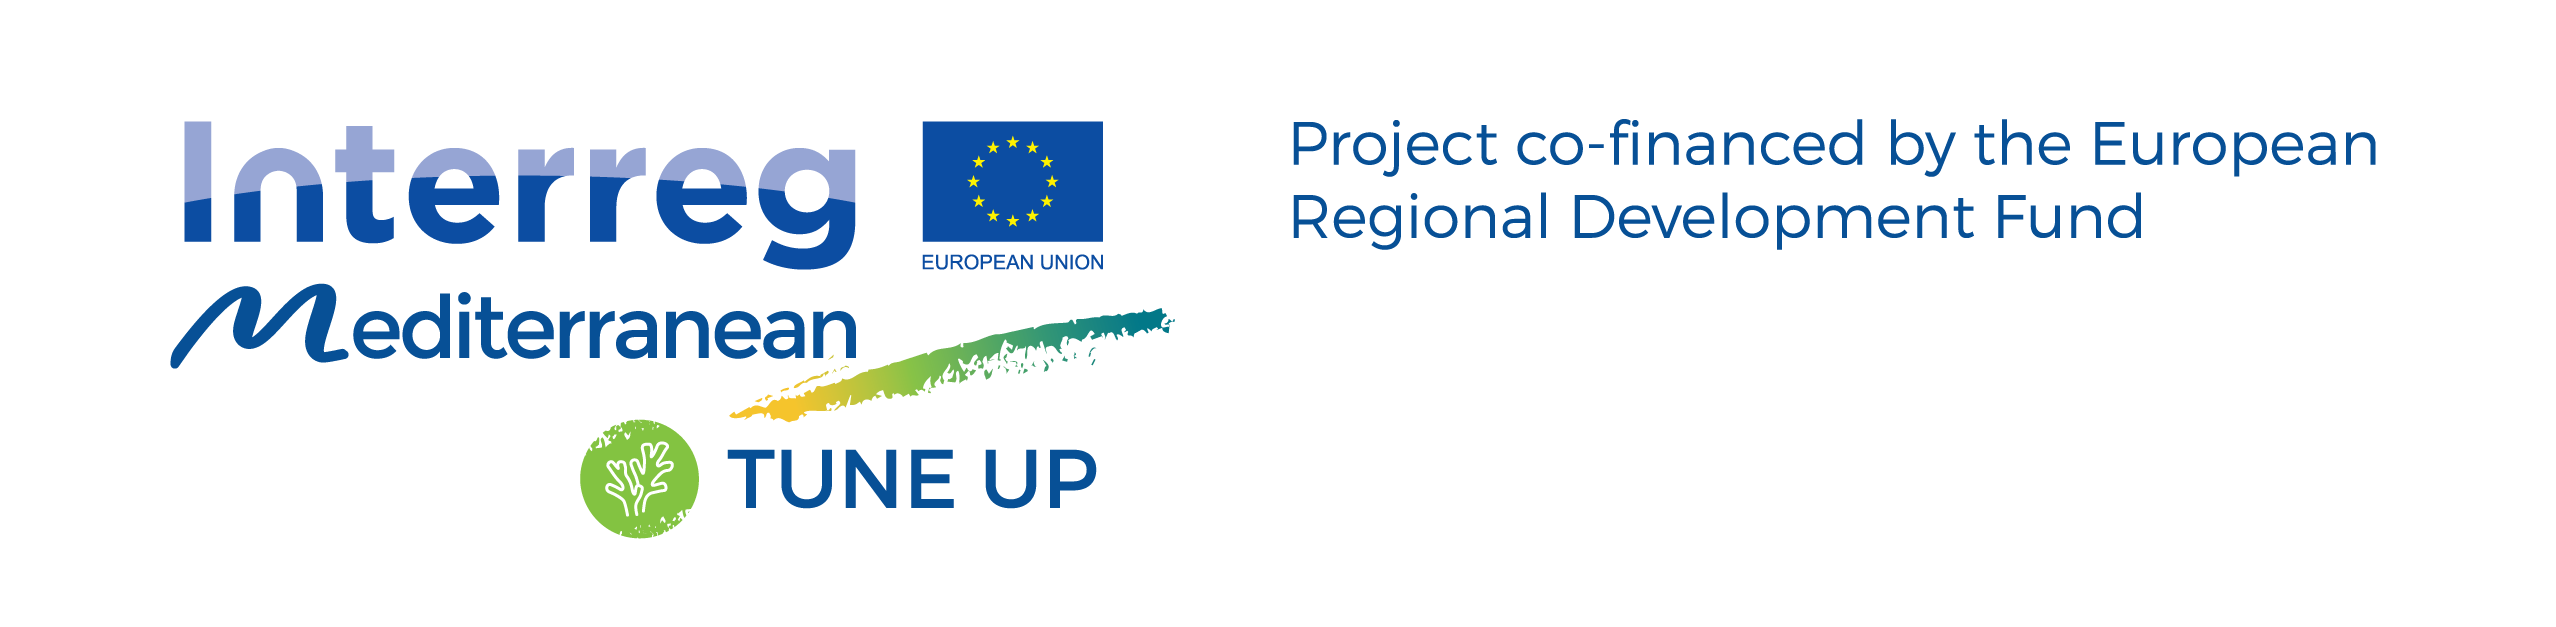 LOGO ERDF TUNE UP